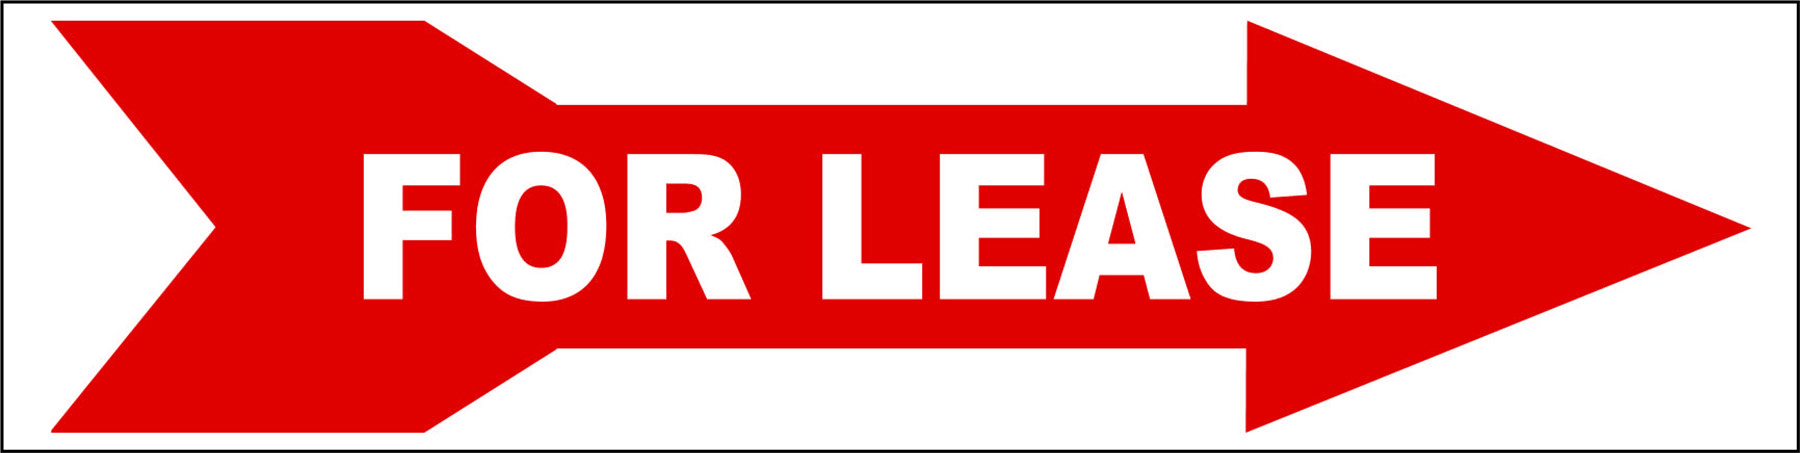 For Lease Directional